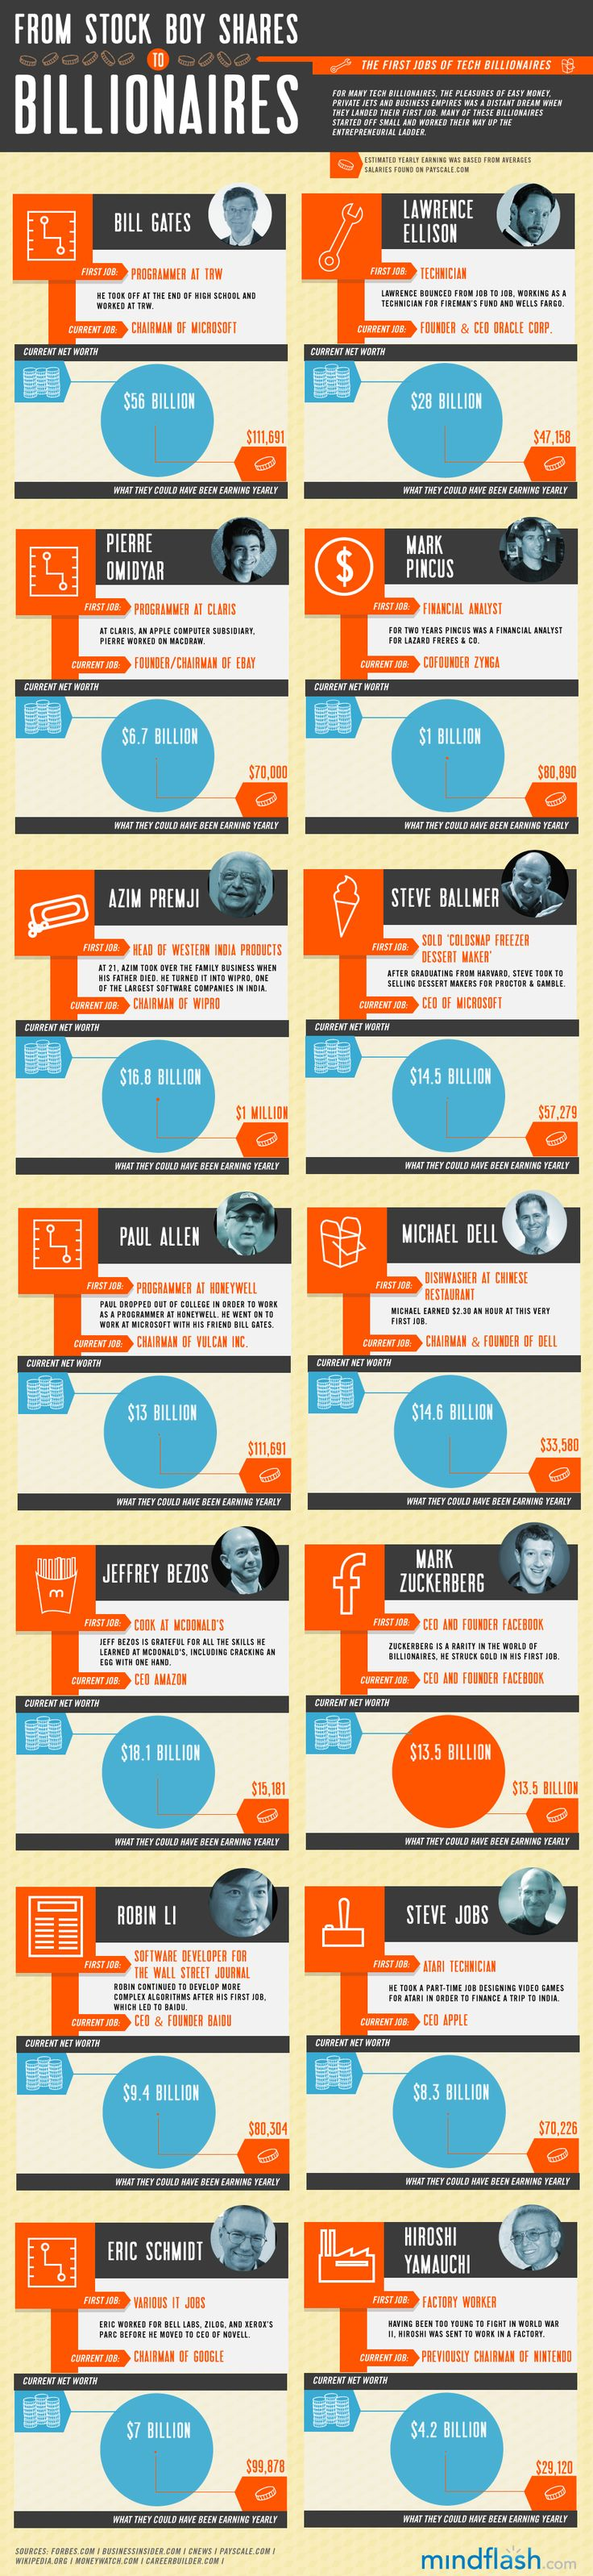 The First Jobs of Tech Billionaires